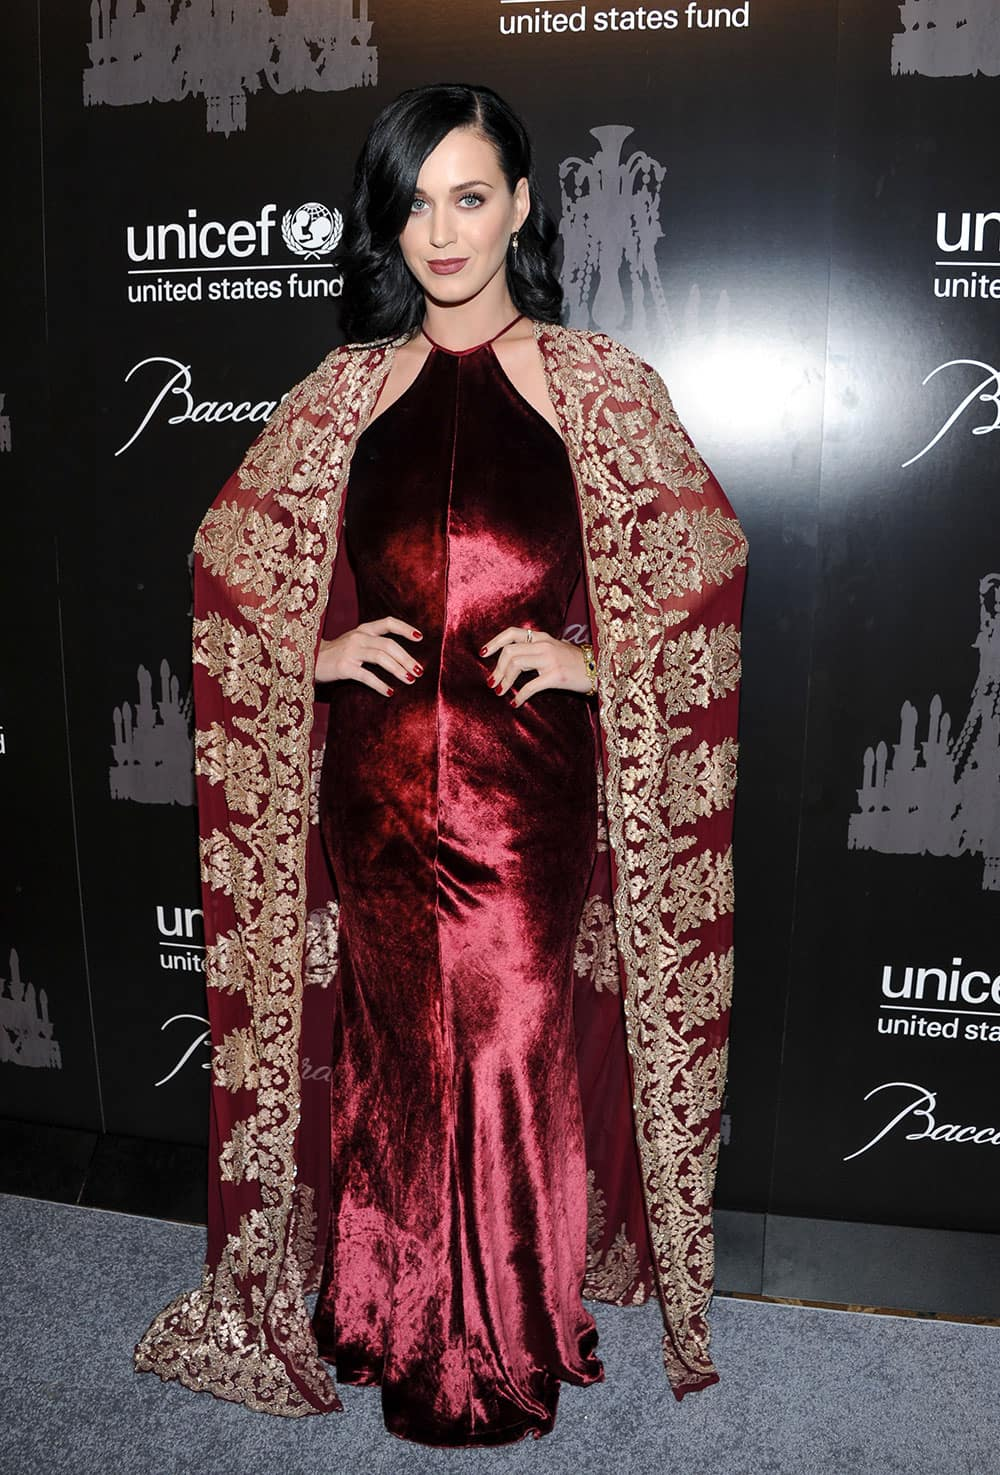 Singer and UNICEF Goodwill Ambassador Katy Perry attends the ninth annual UNICEF Snowflake Ball at Cipriani Wall Street in New York.